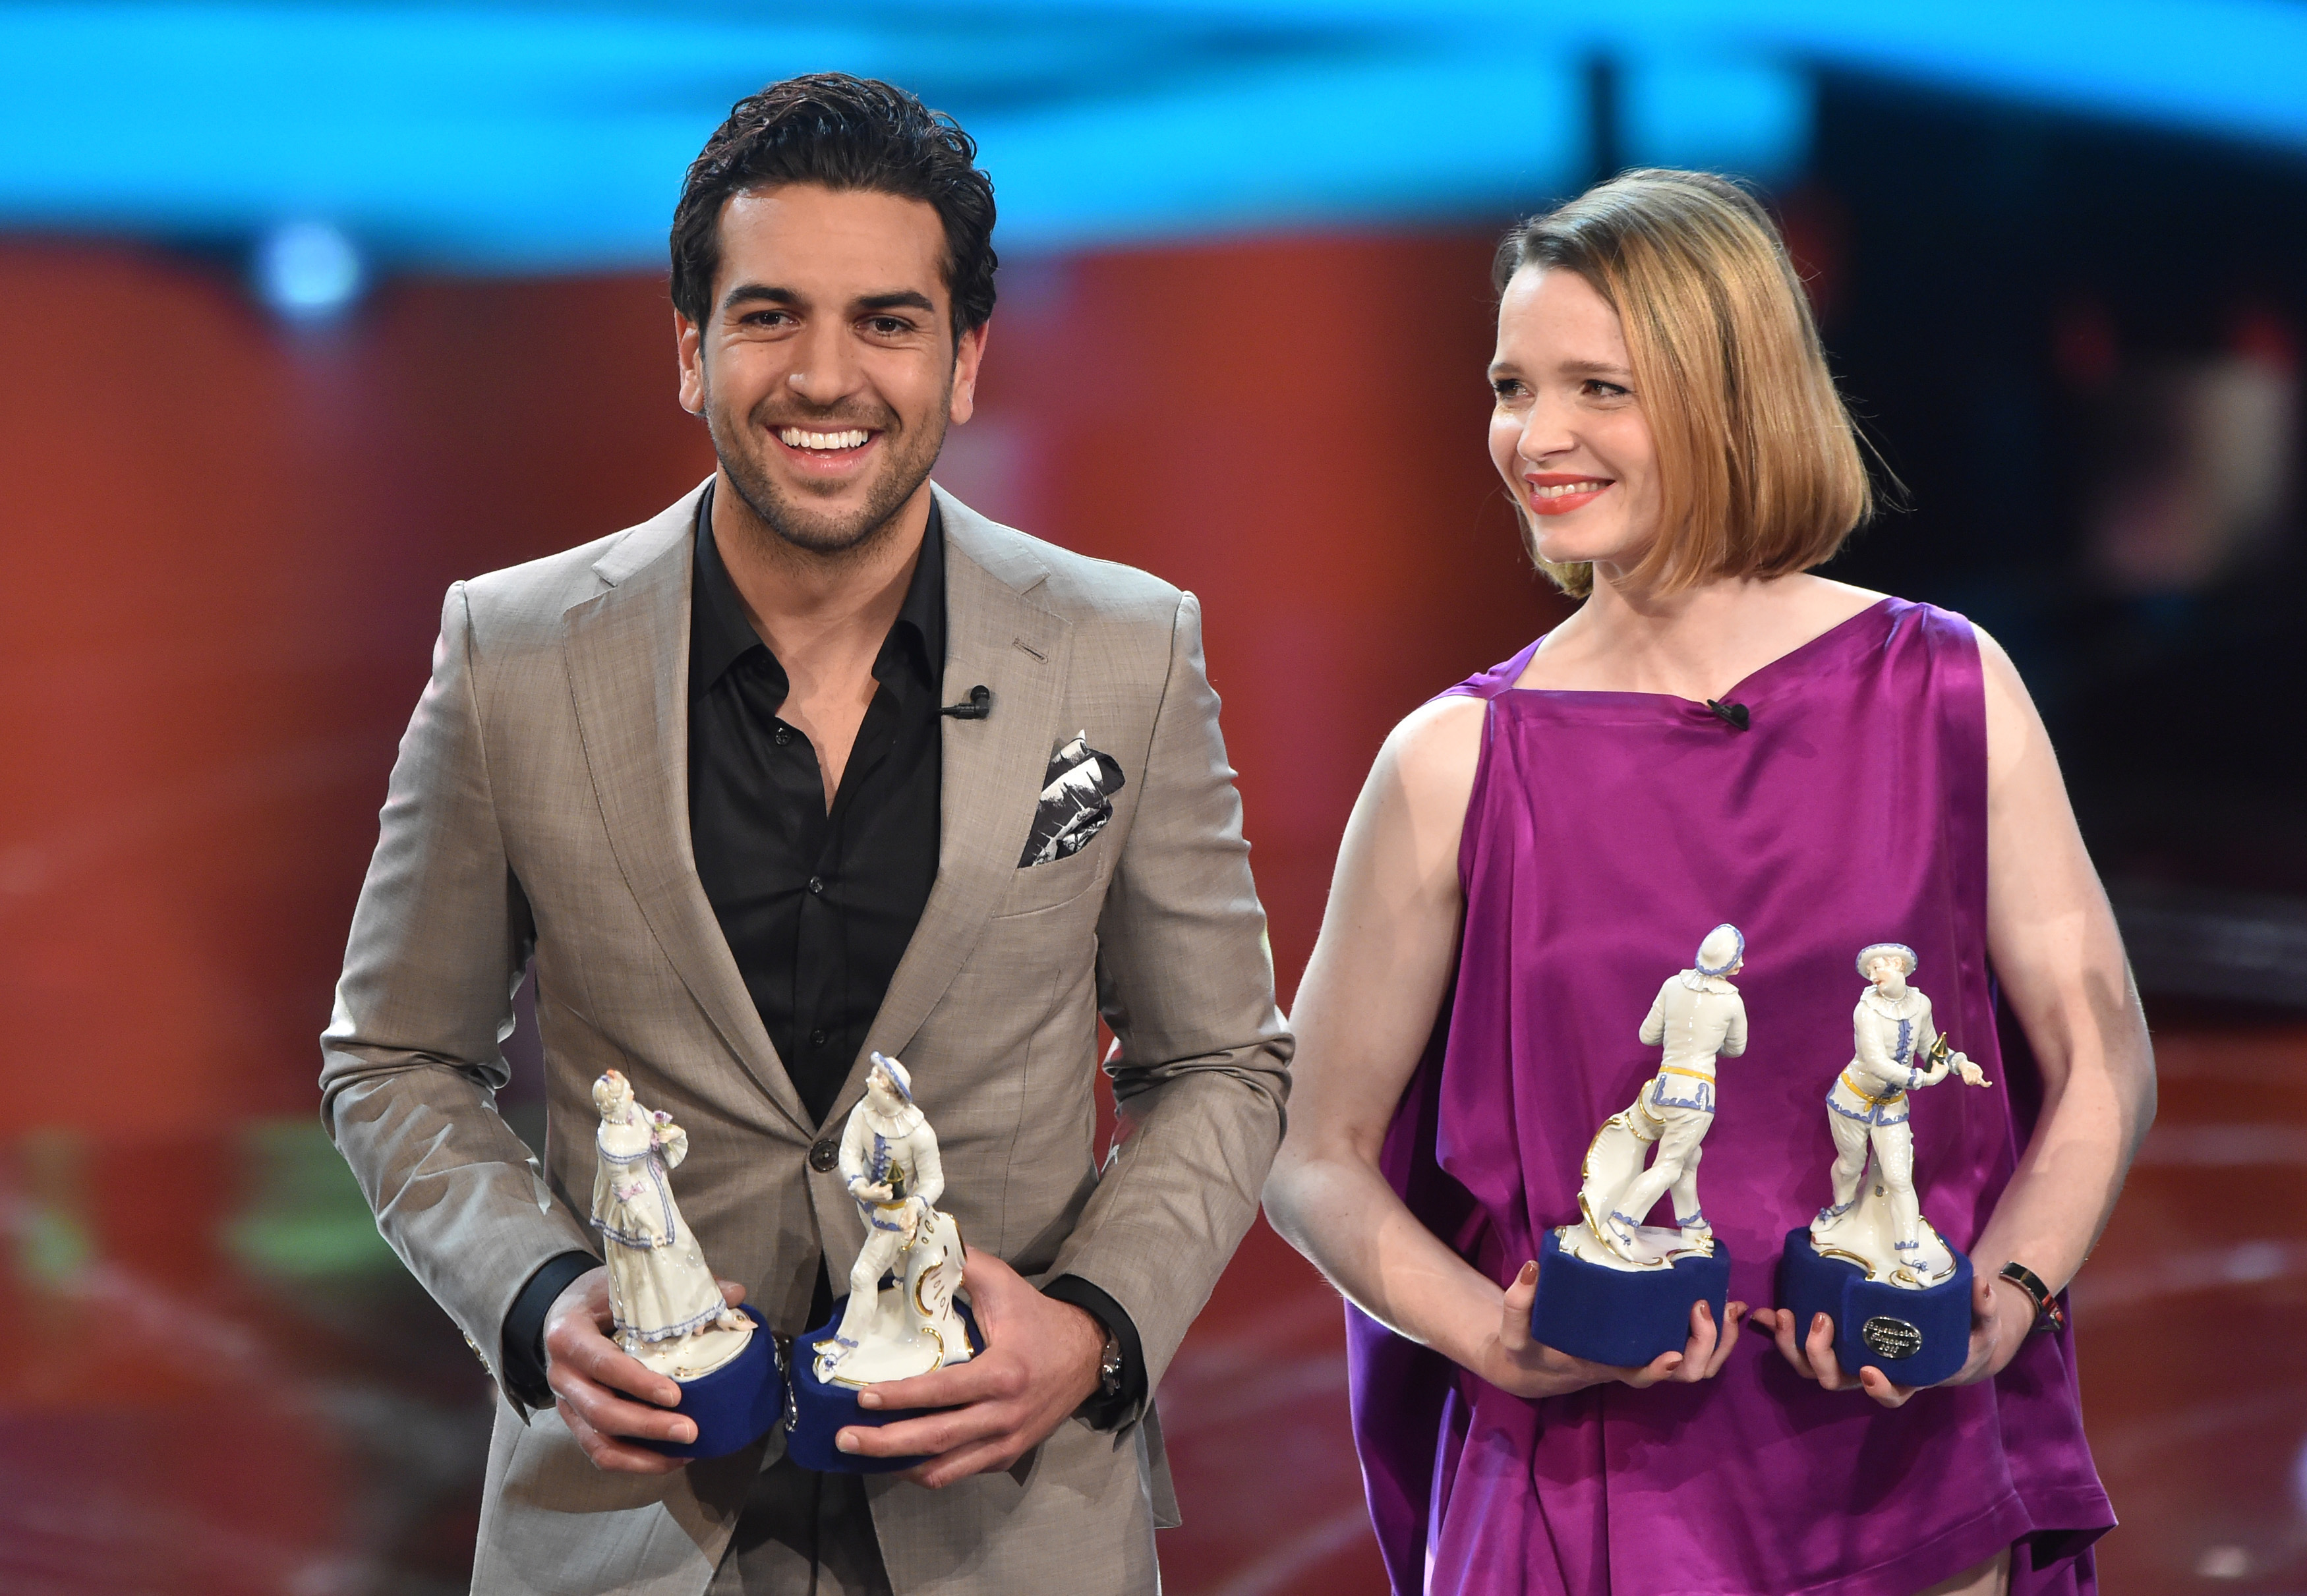 Elyas M'Barek and Karoline Herfurth